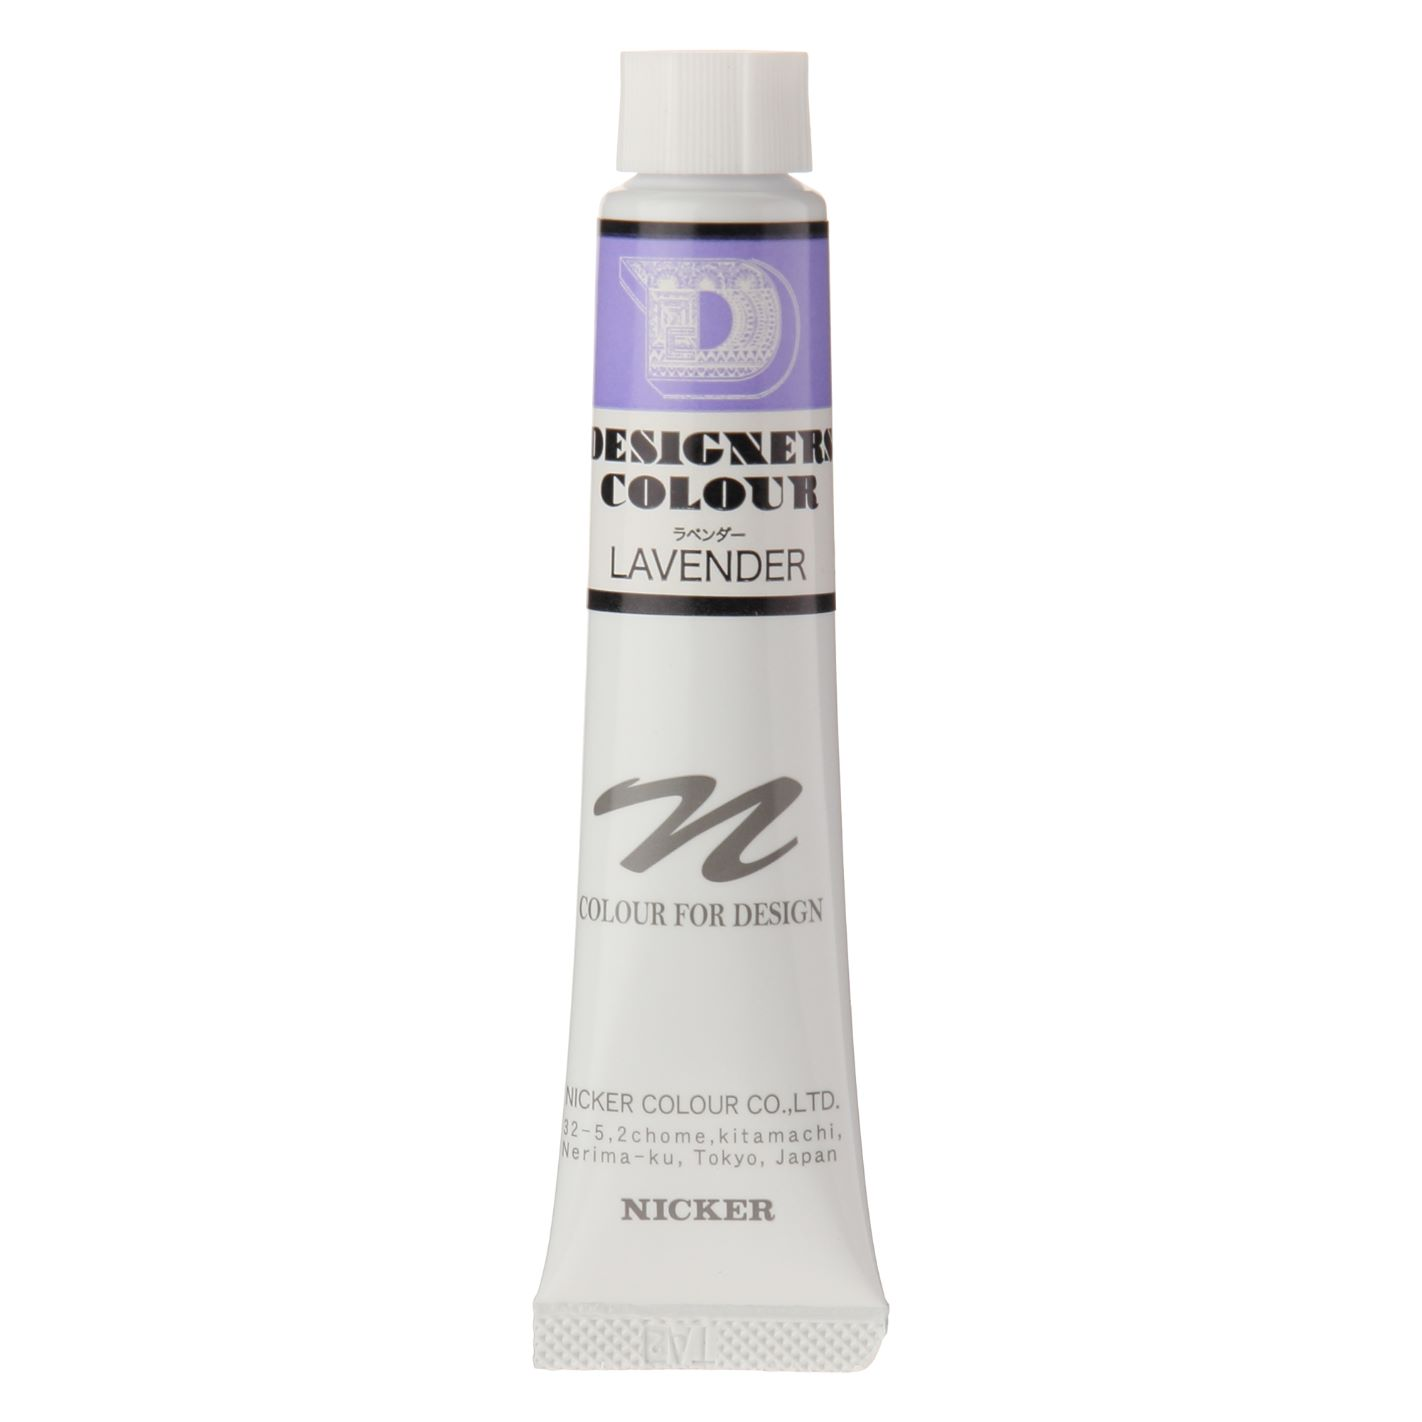 DESIGNERS COLOUR 20ml 577 LAVENDER